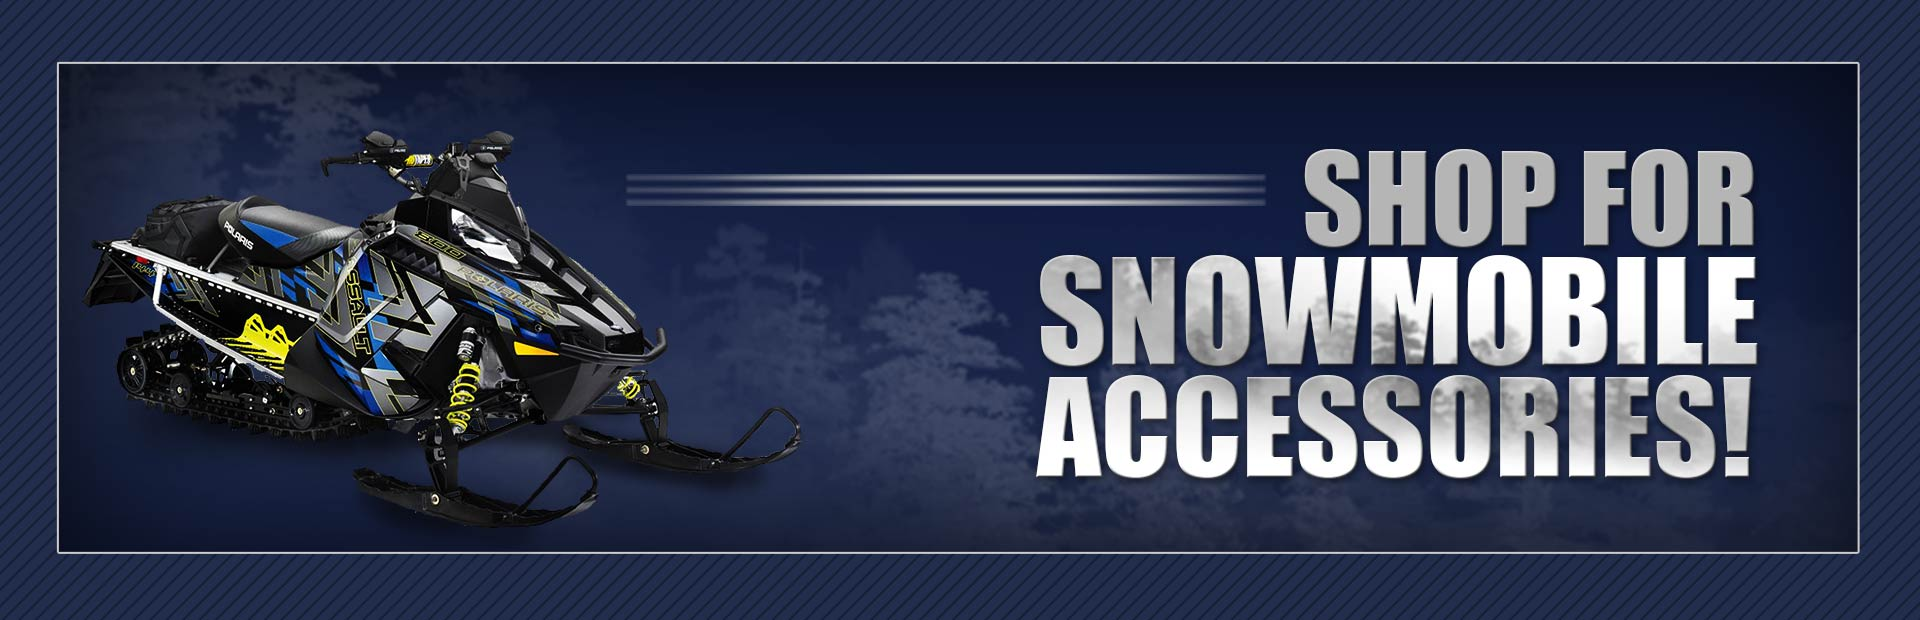 Click here to shop for snowmobile accessories.